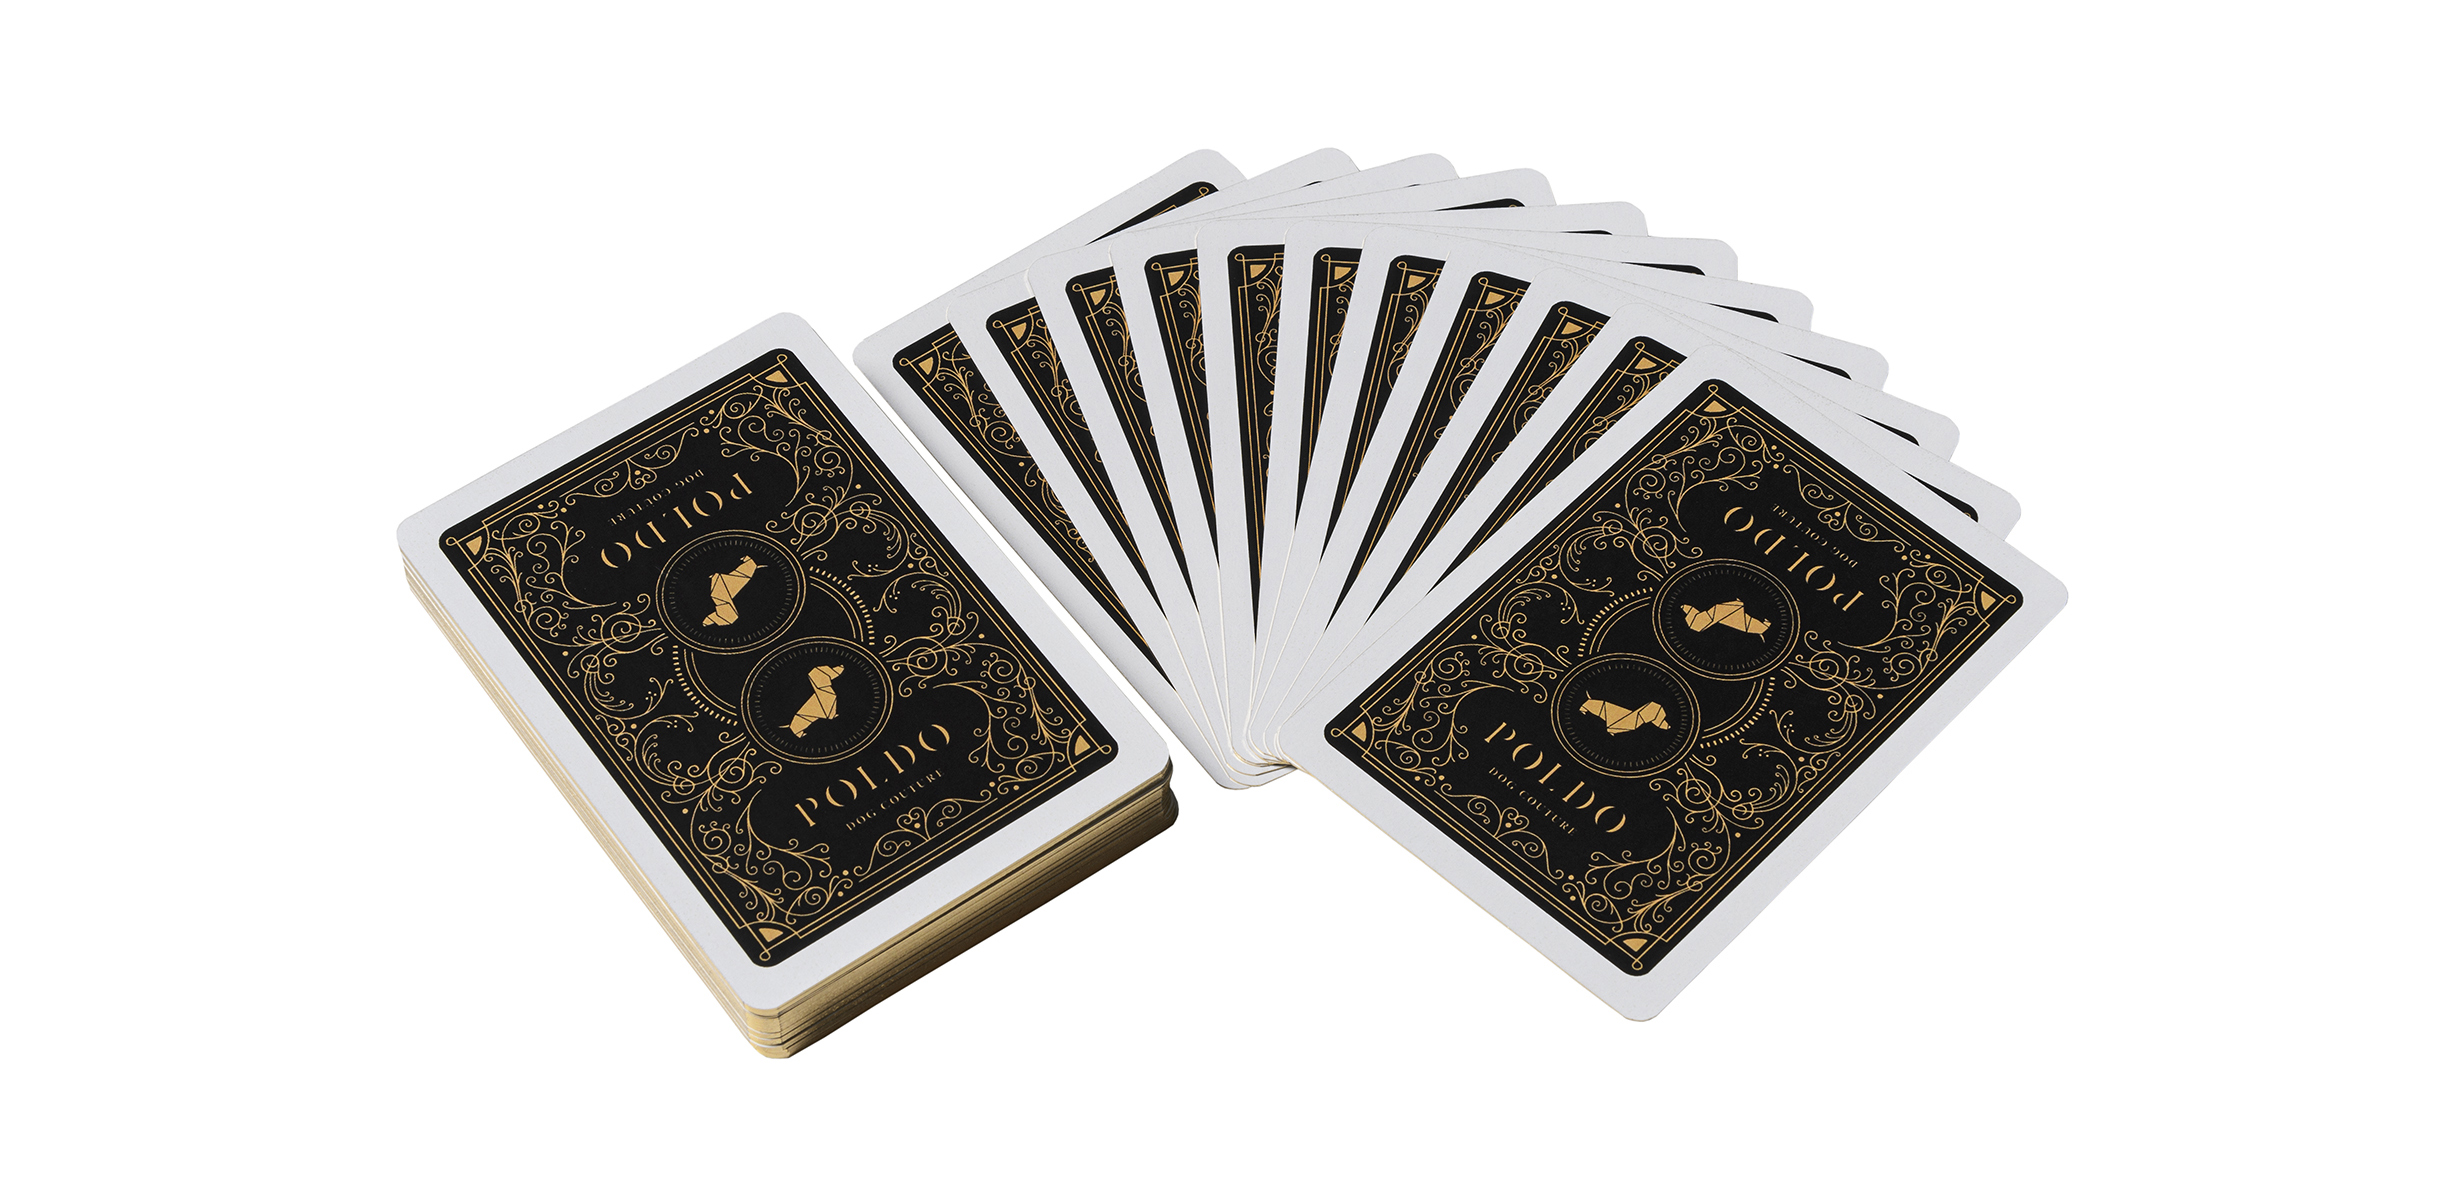 poldo dog couture playing cards black deck